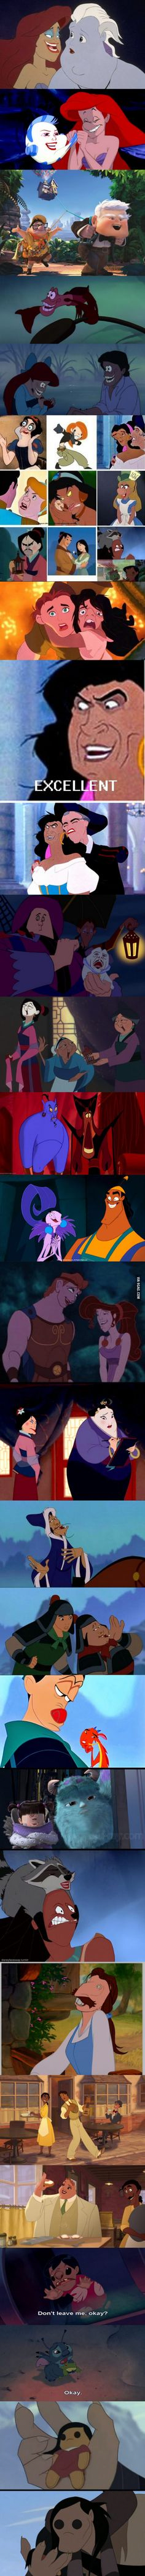 """Didney Worl"". When I'm having a bad day I look at funny face swaps."